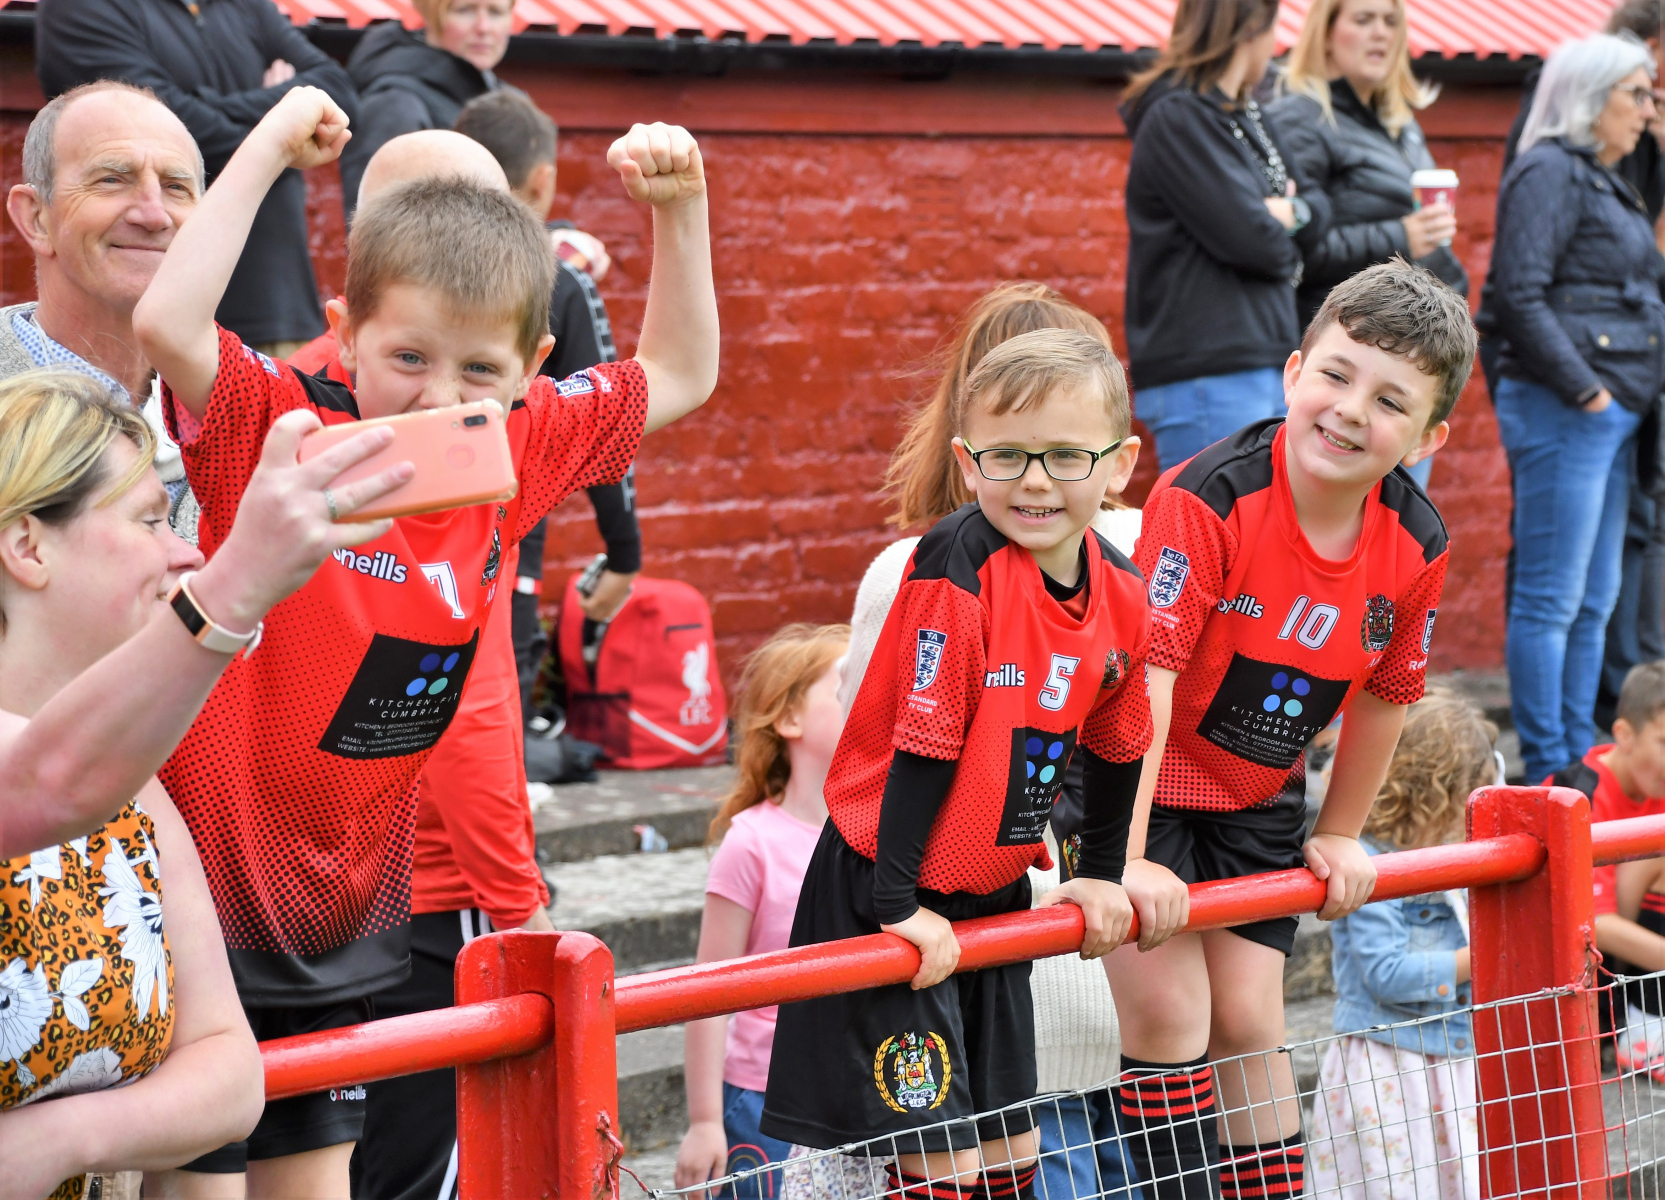 Reds Festival of Football – fun for the juniors